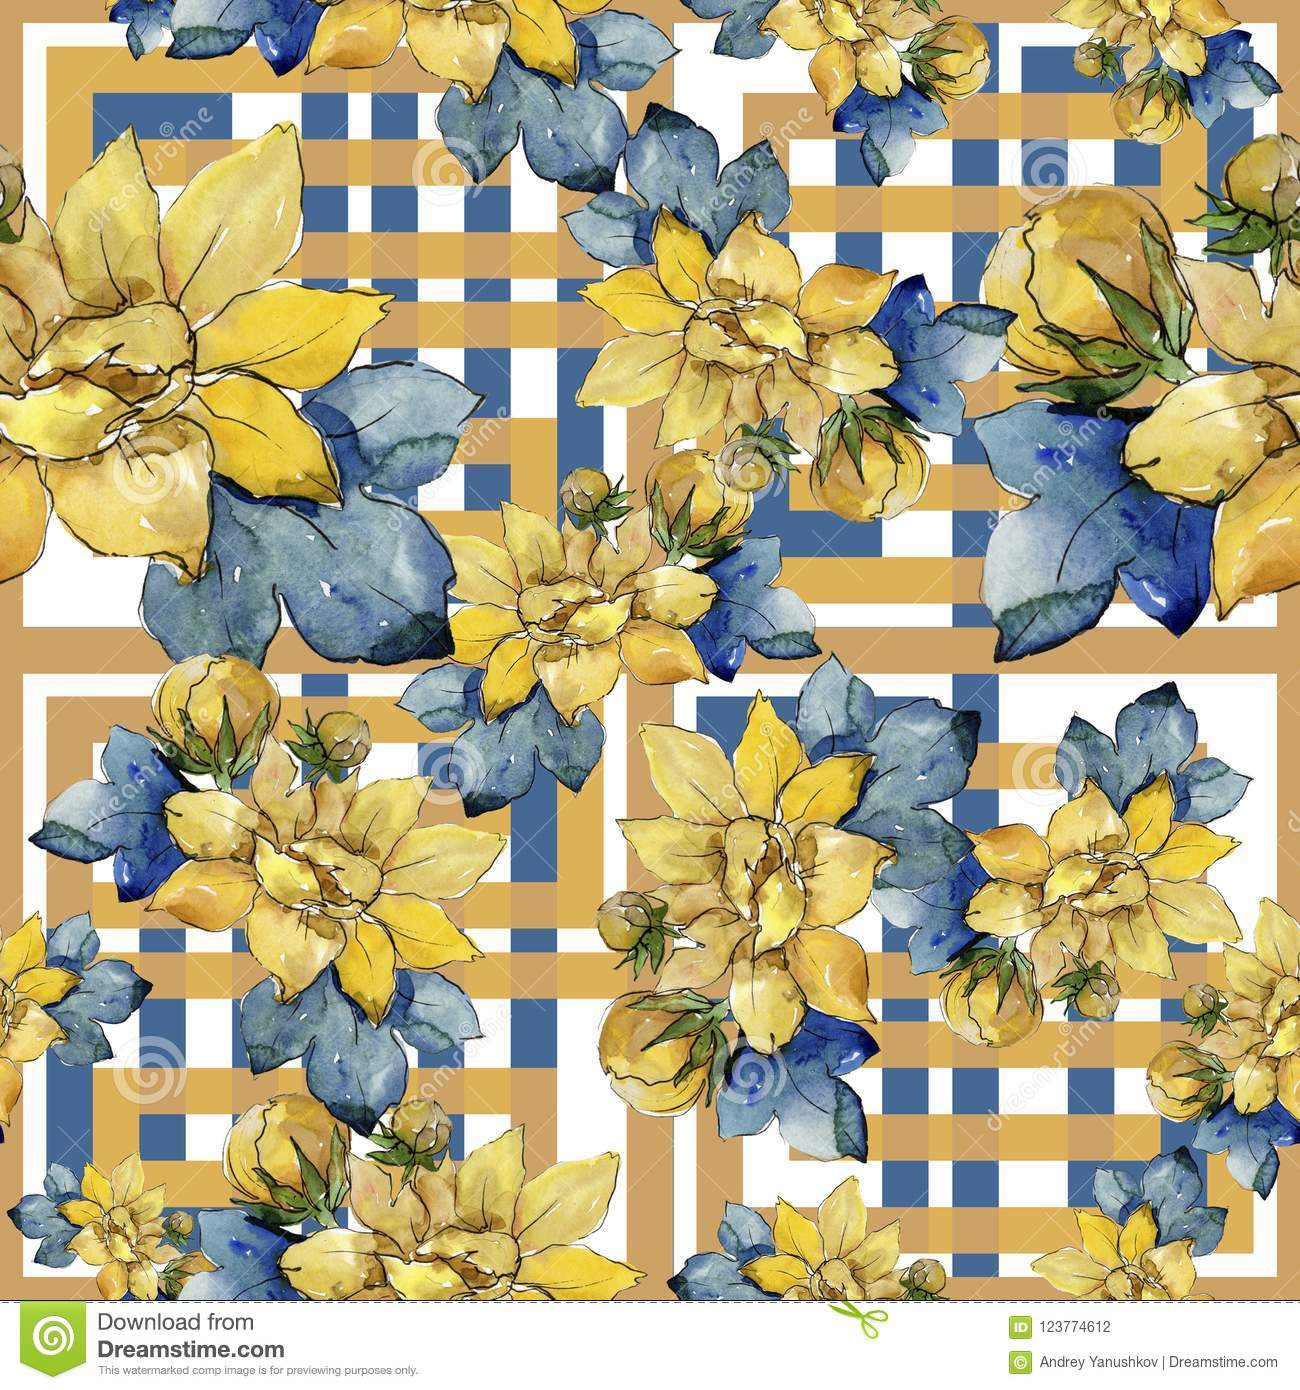 Watercolor colorful bouquet flowers. Seamless background pattern.